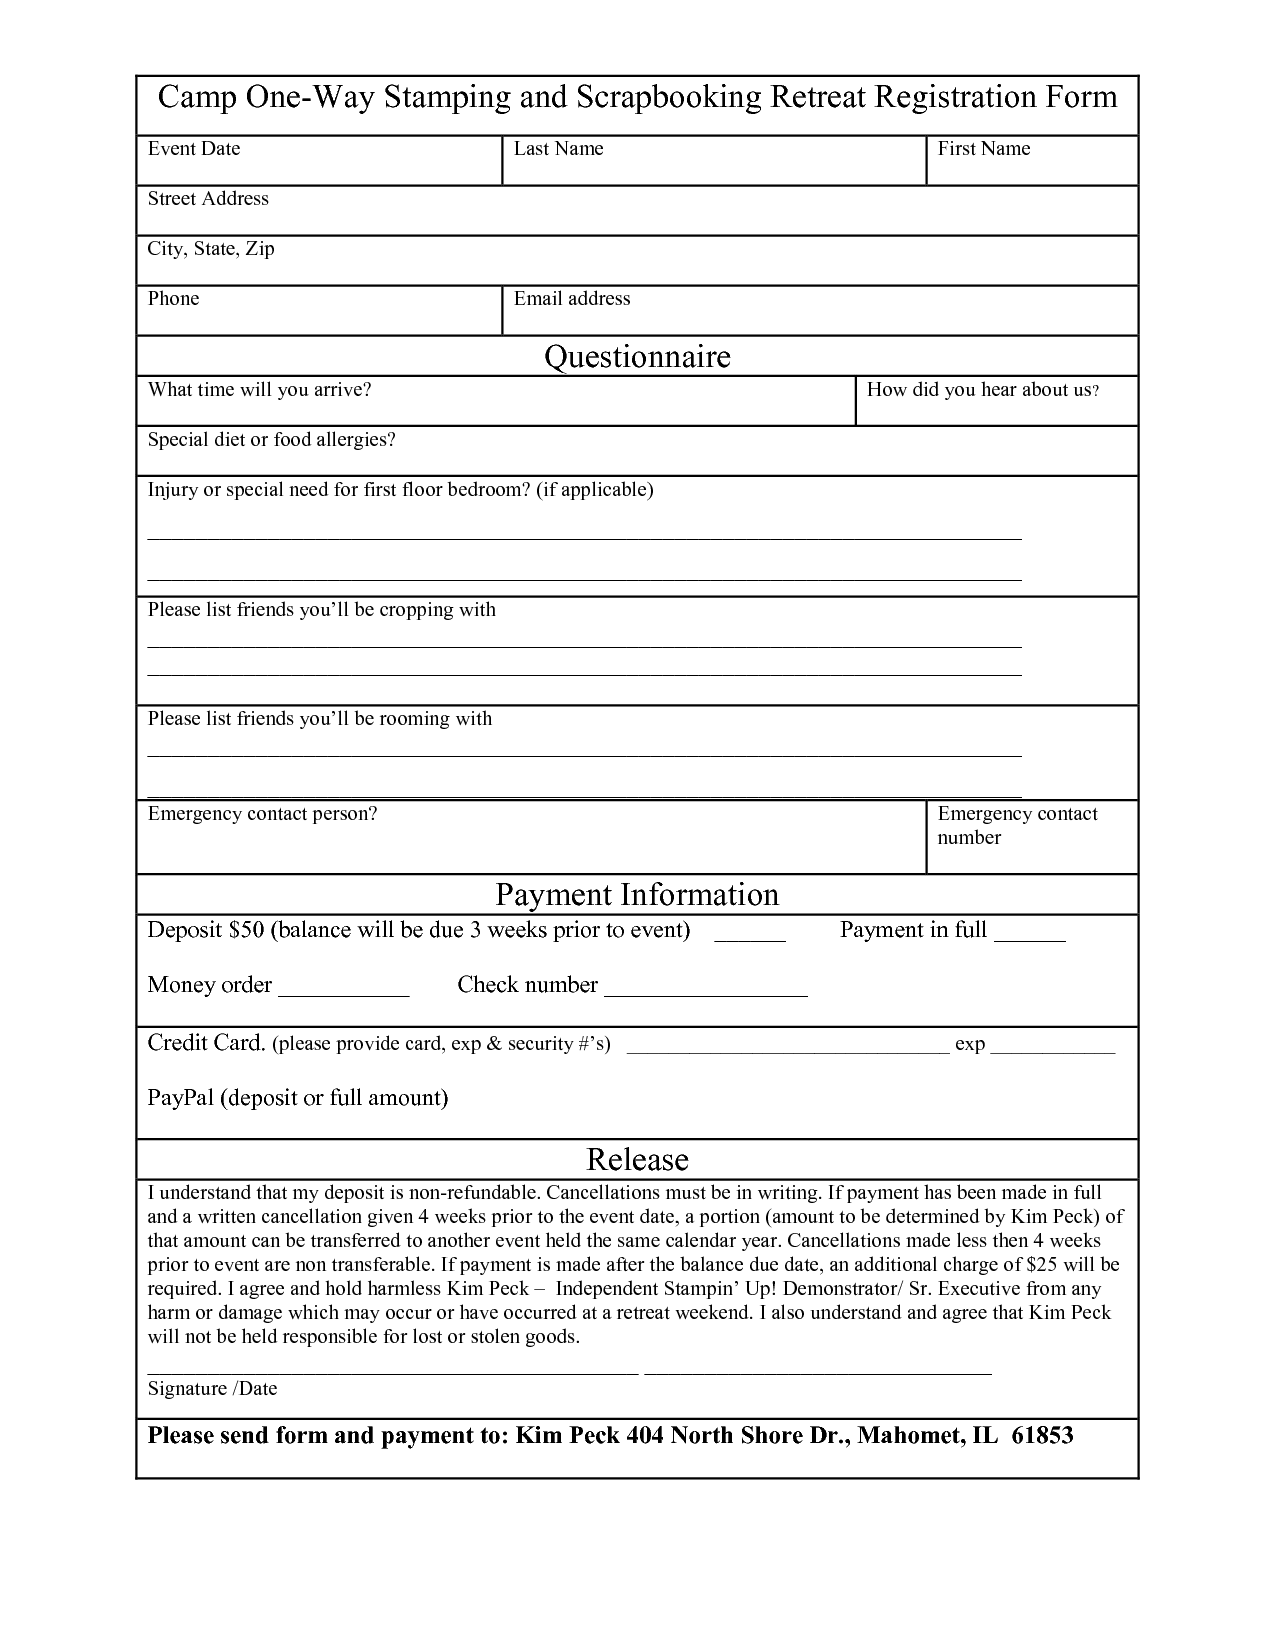 Registration form template word charlotte clergy coalition application packet for free and reduced price school meals form thecheapjerseys Gallery